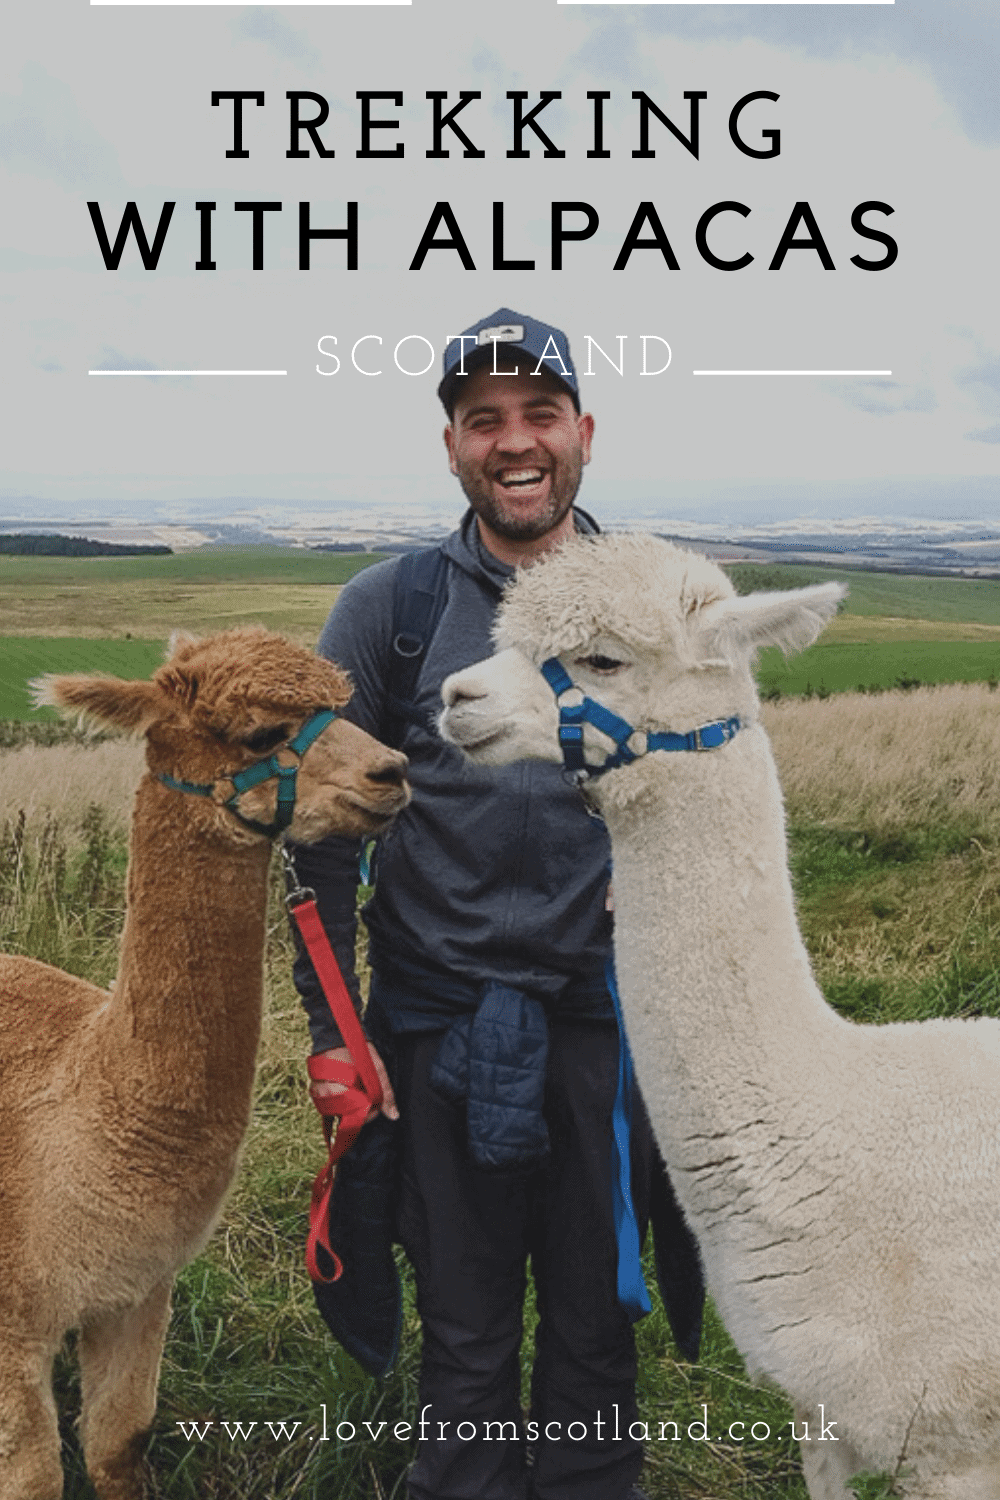 Fancy going trekking with an alpaca? Let\'s go alpaca walking at Beirhope Farm in the Scottish Borders. Meet your new best furry friends!